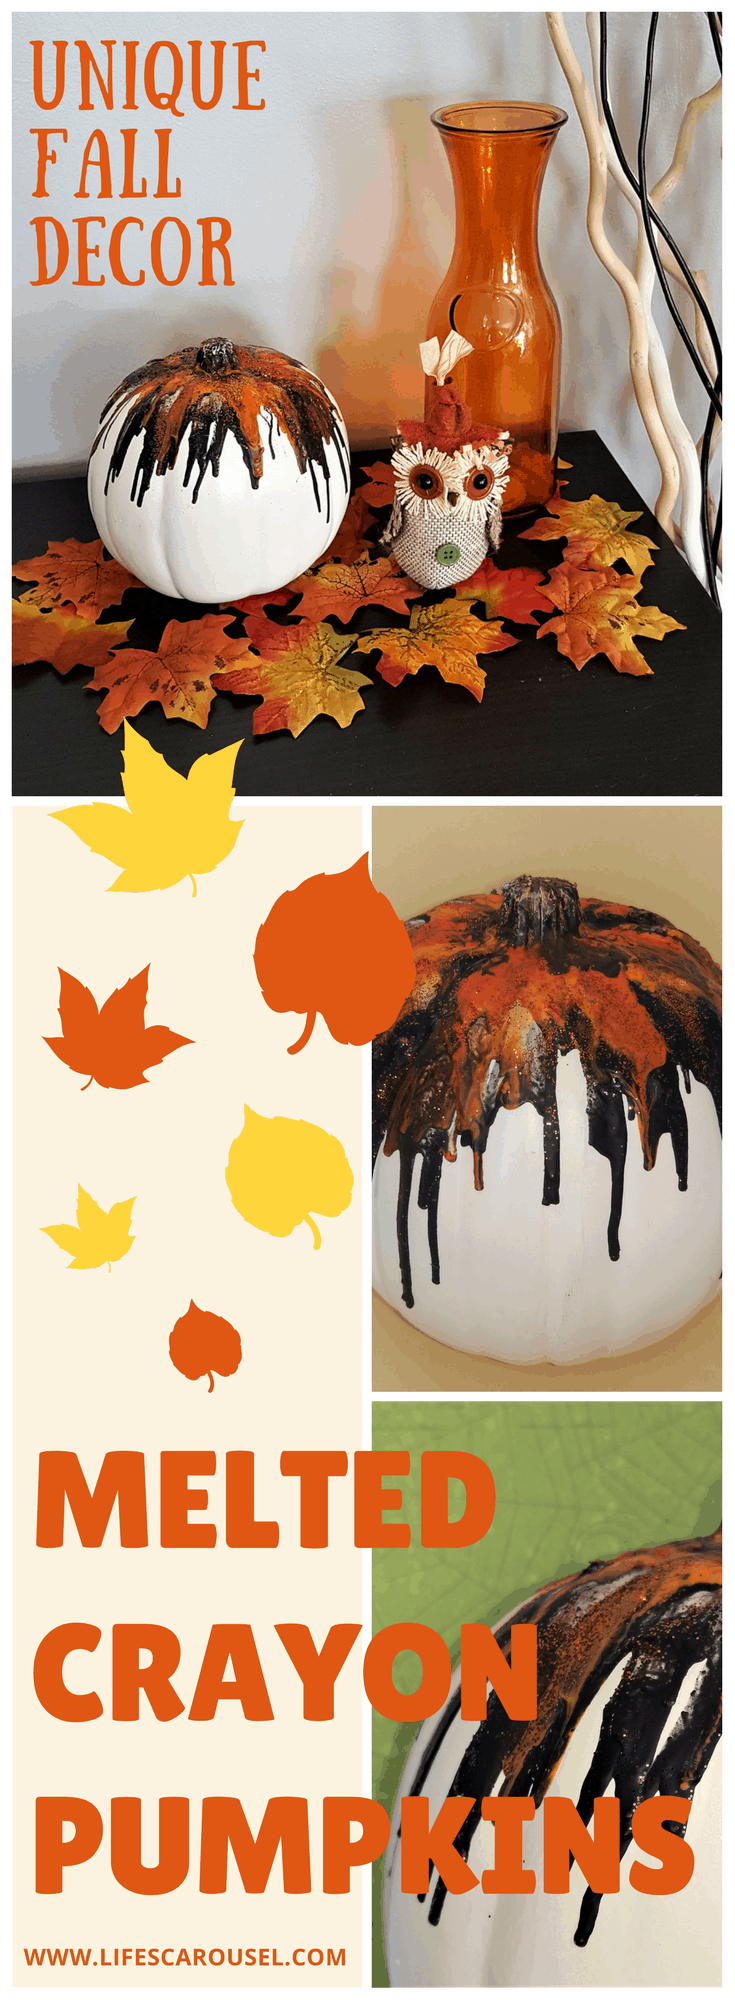 Fall Melted Crayon Pumpkin | Unique Pumpkin Decoration Perfect for Fall or Halloween Decor